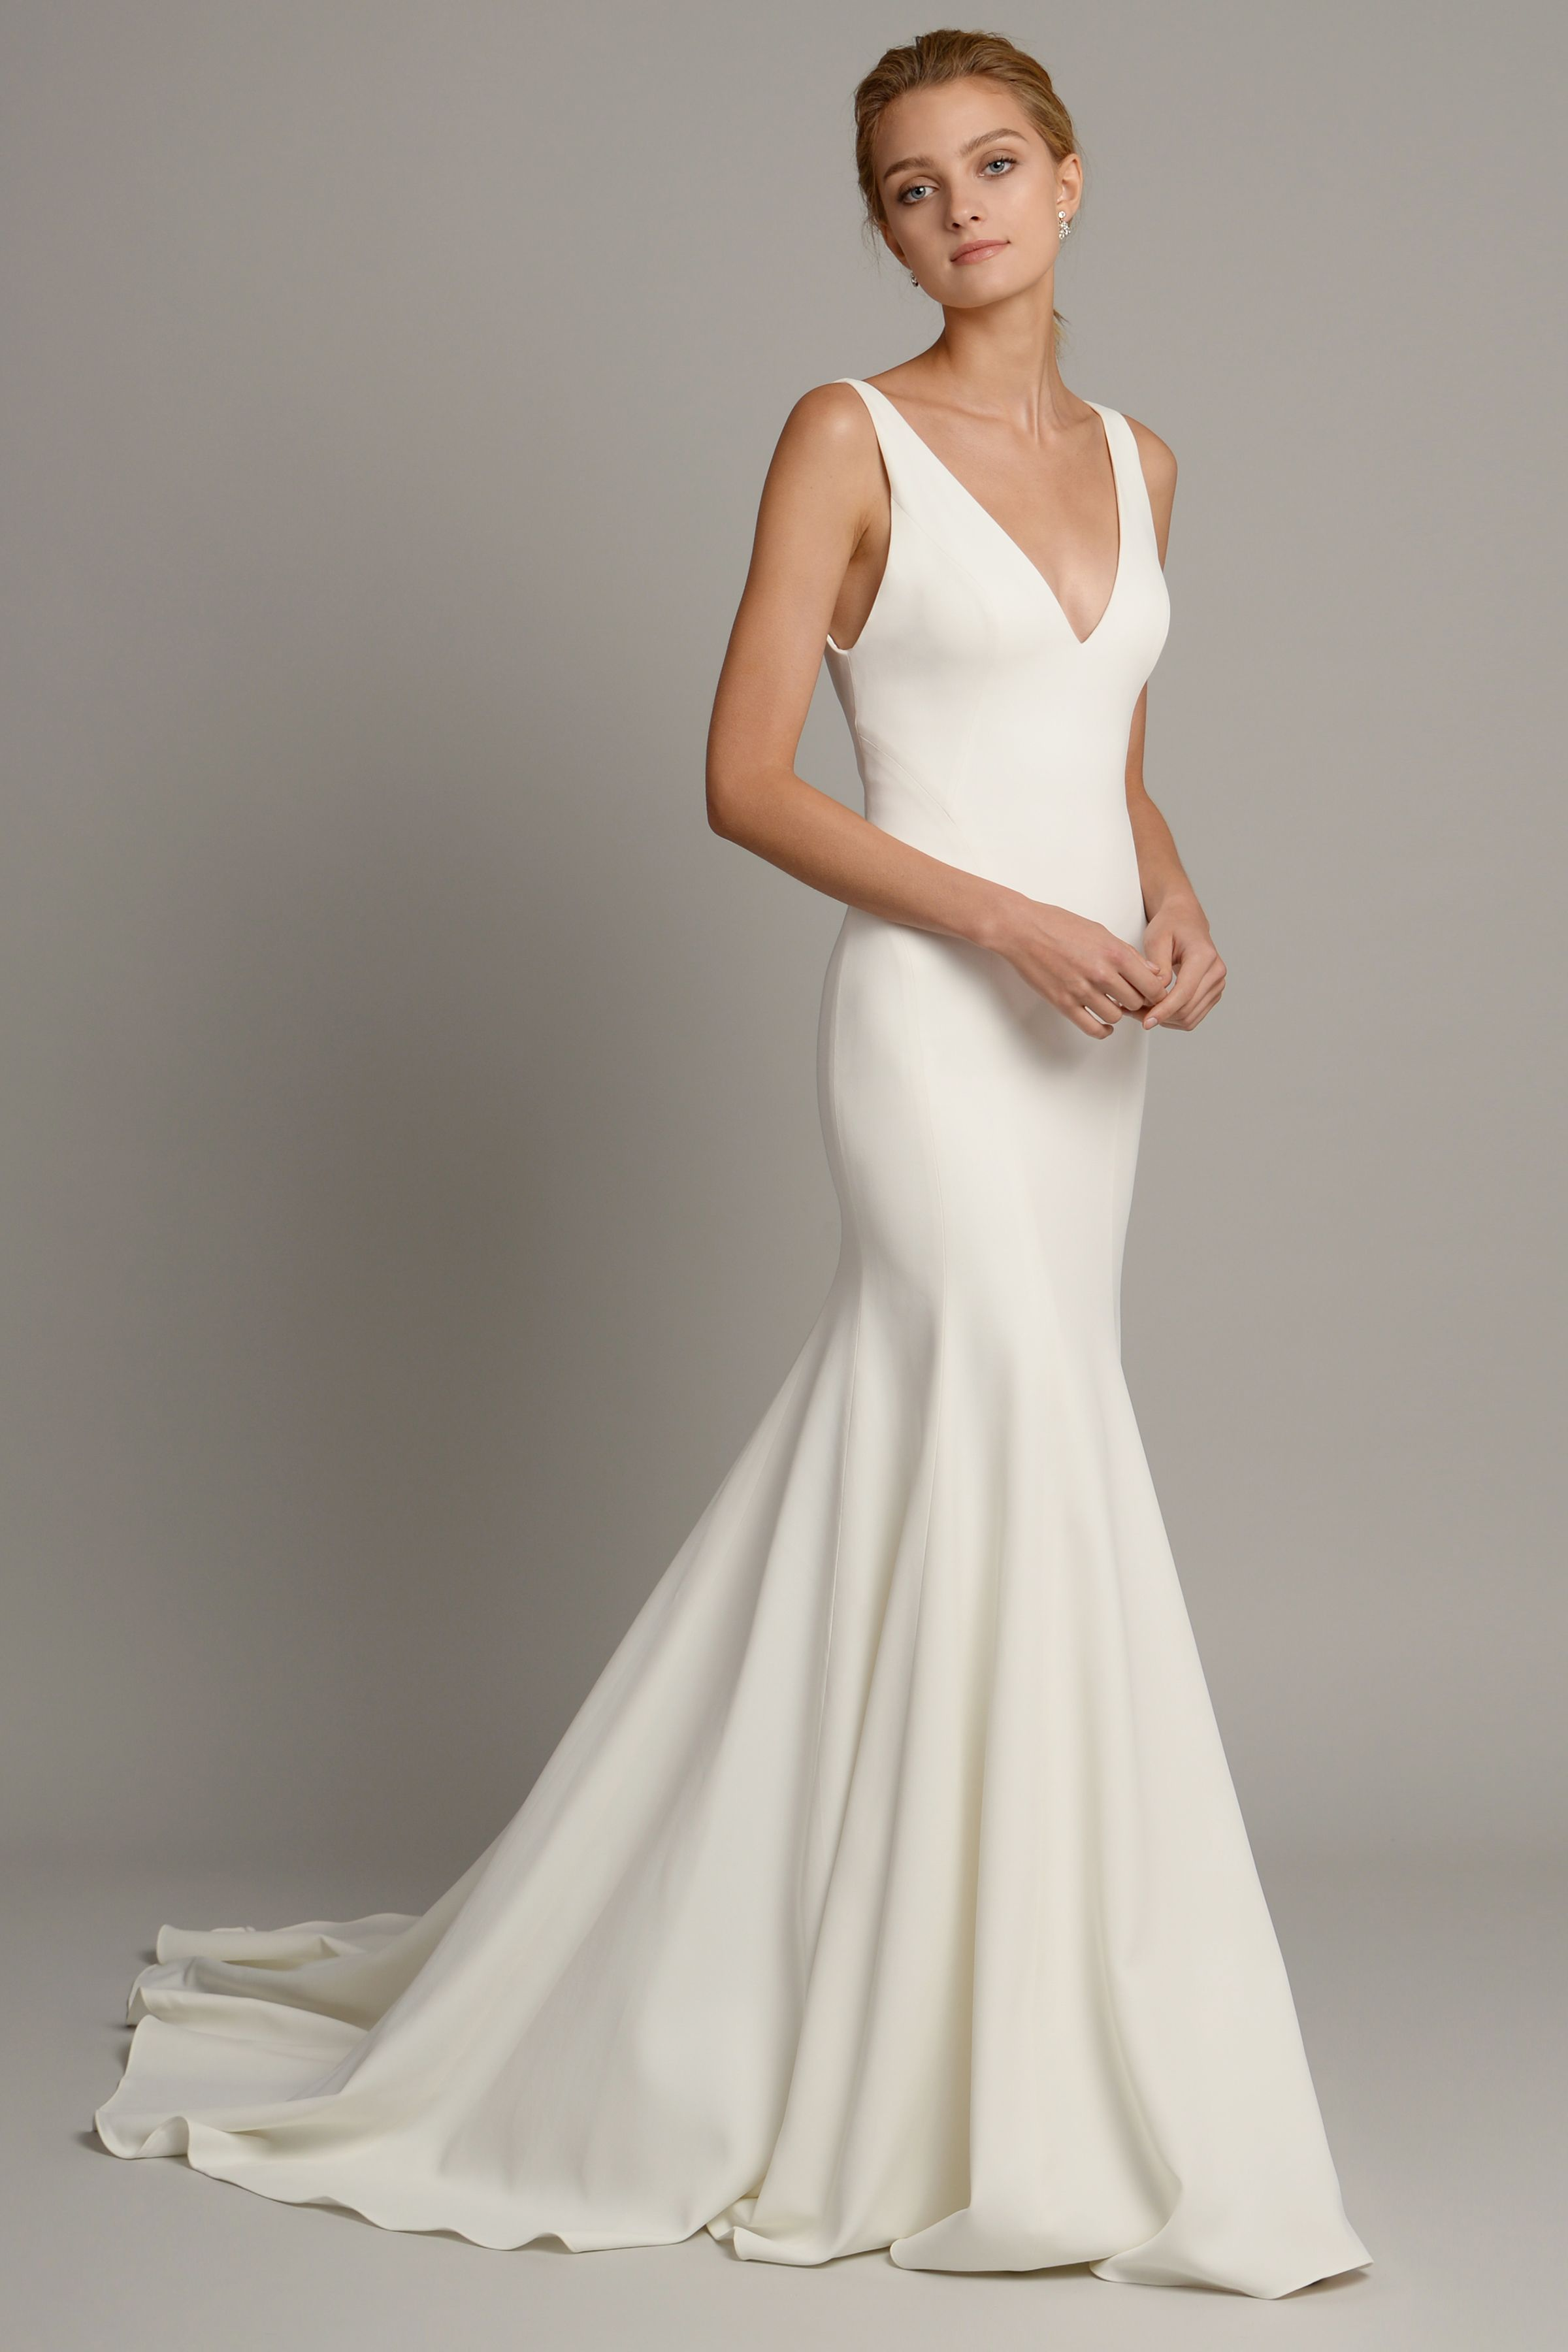 cee99d236c54 Introducing the Finley gown by Jenny Yoo x Lovely Bride Spring 2019! This wedding  dress features a deep, clean pluning v-neckline for a chic, simple, ...